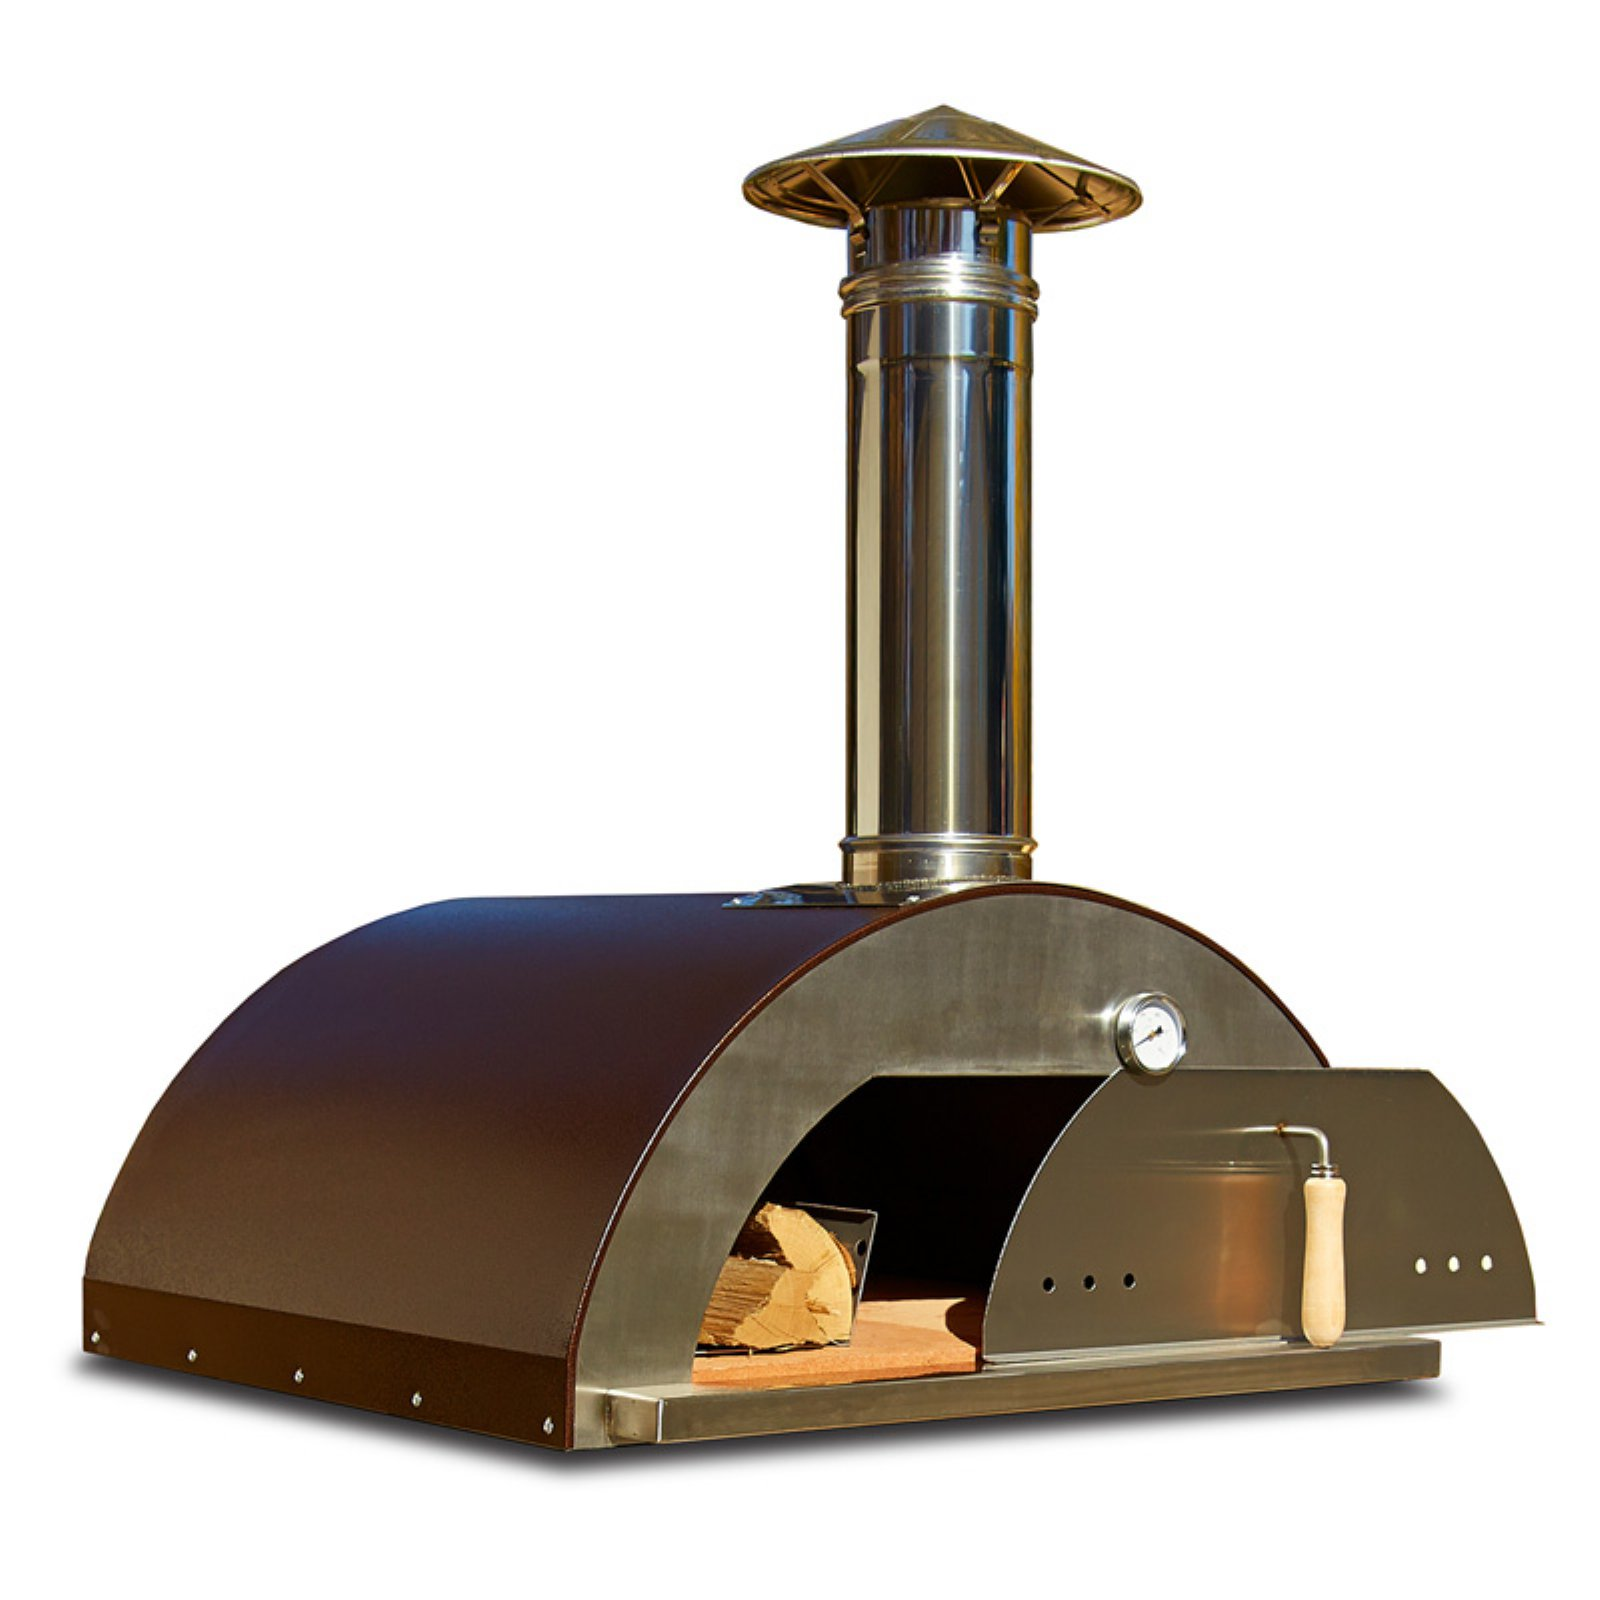 Necessories Nonno Peppe Wood-Fired Outdoor Pizza Oven